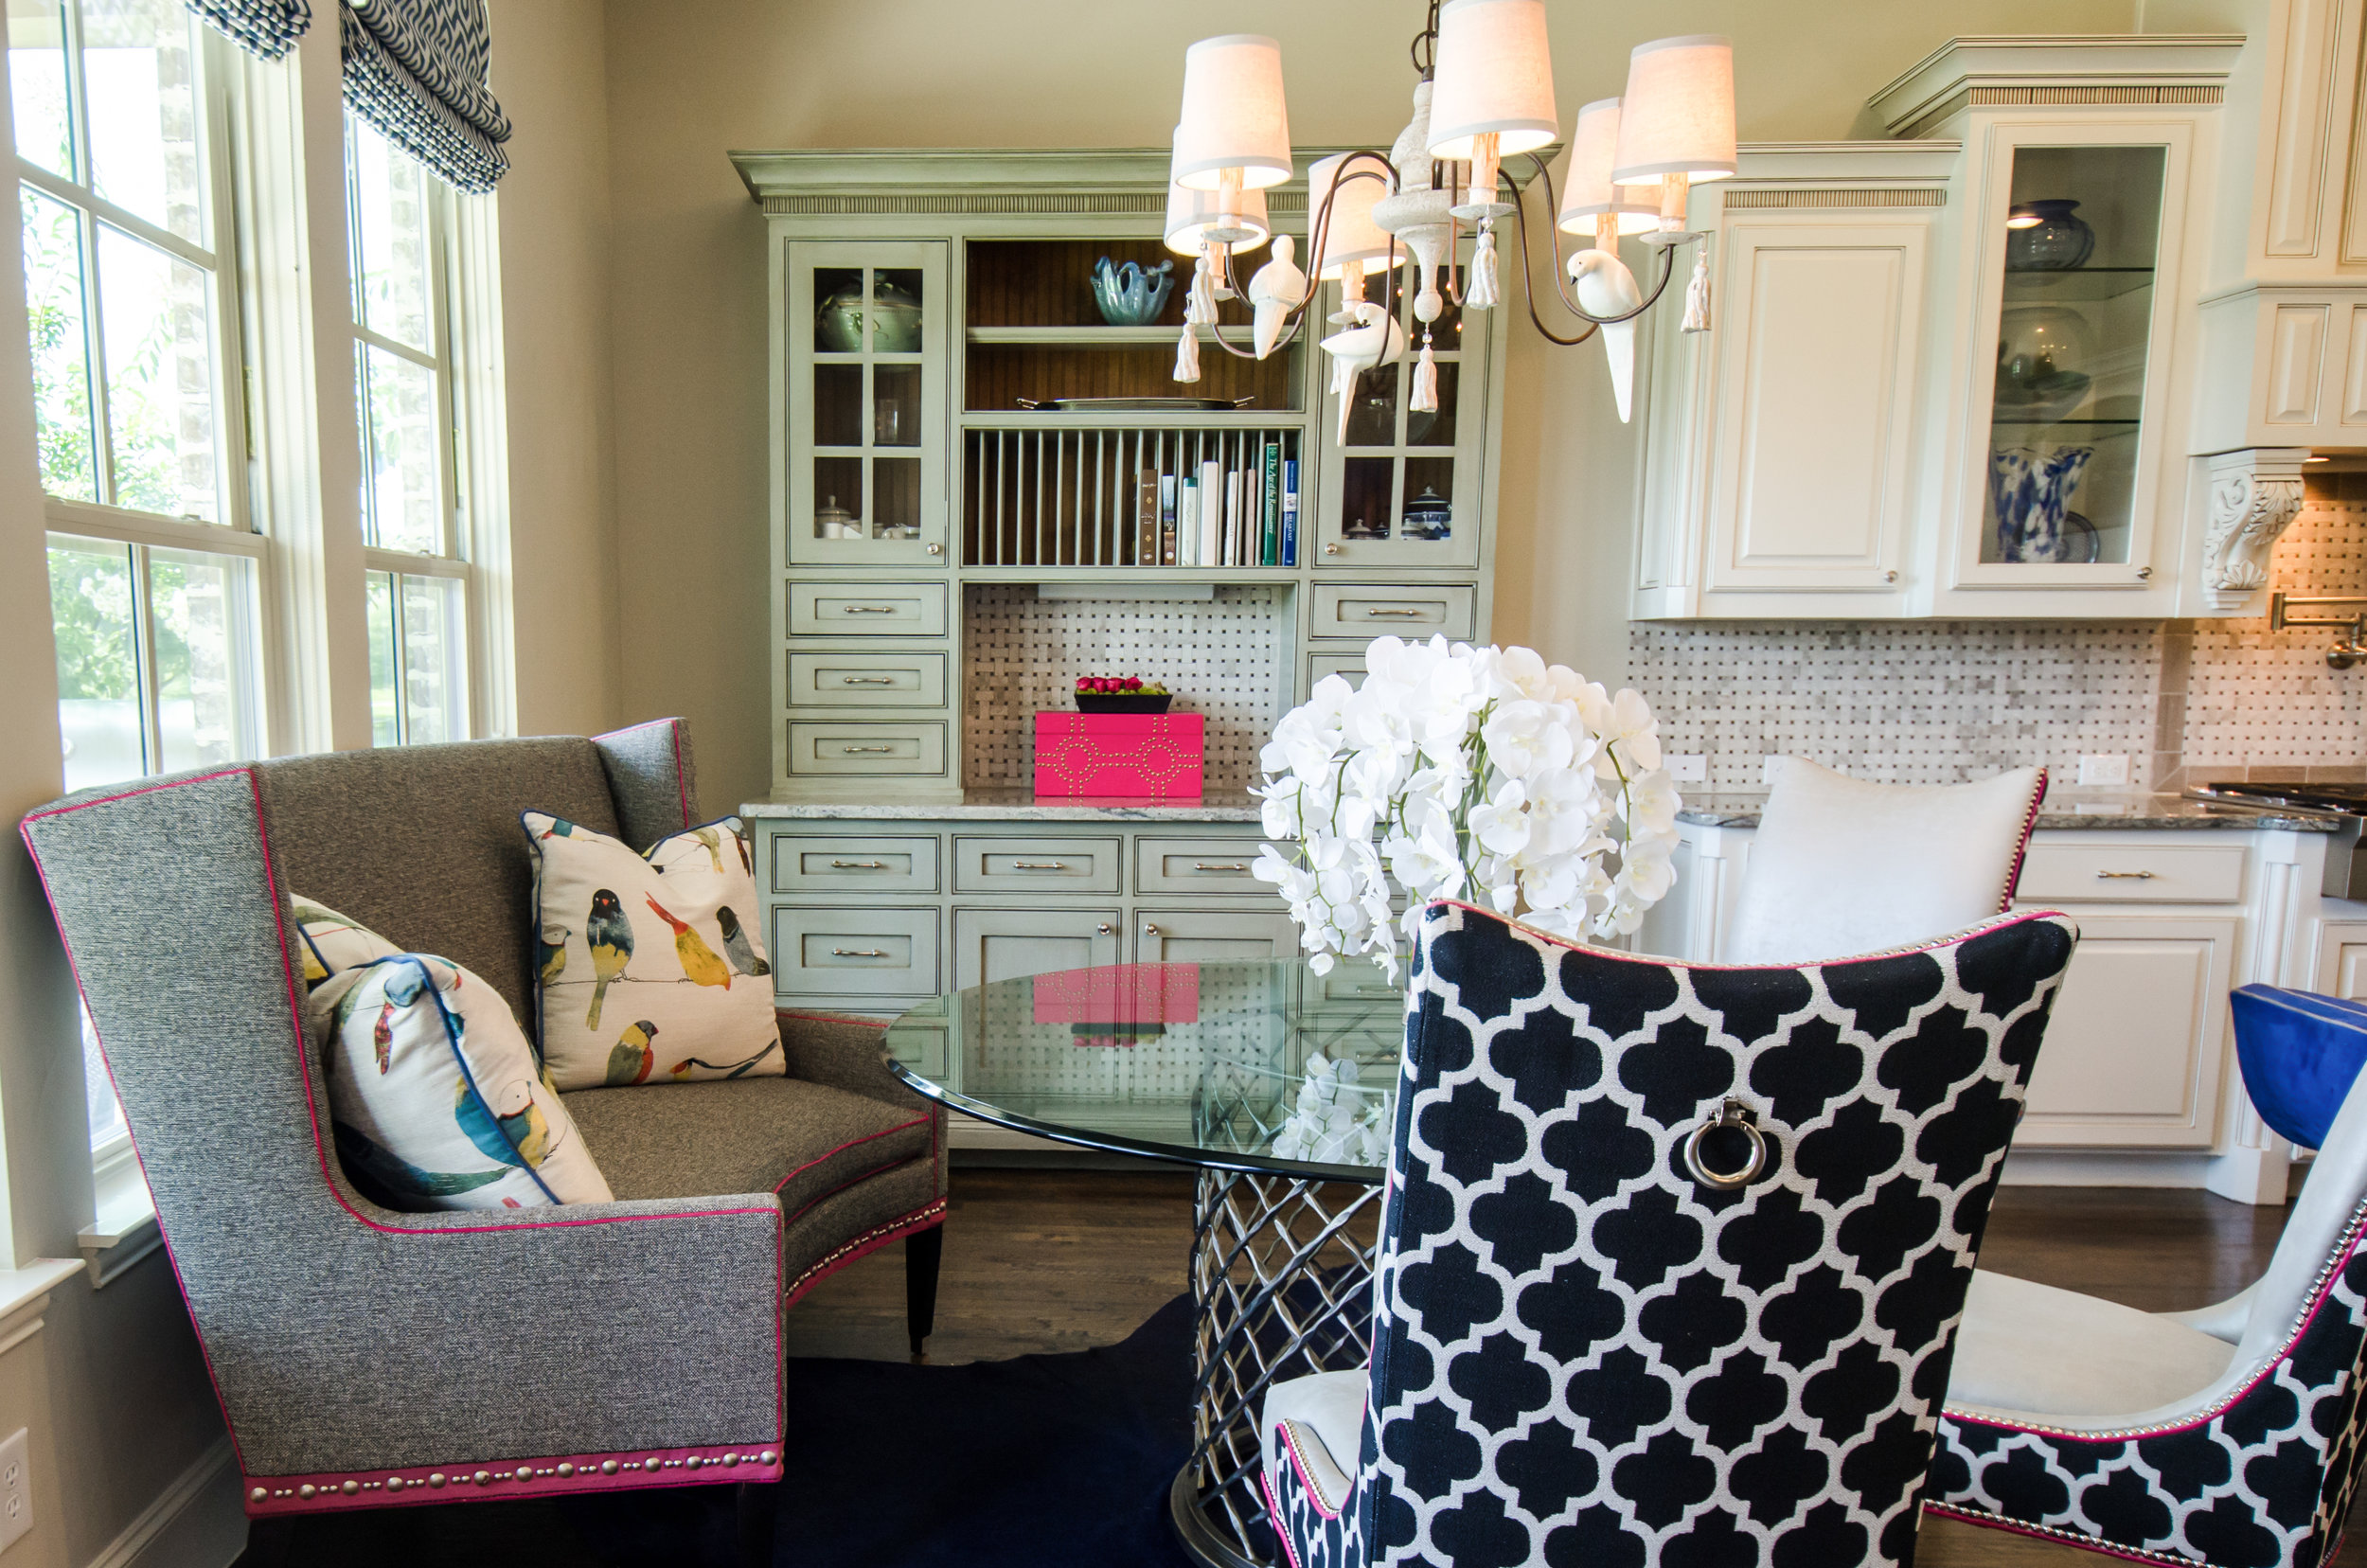 Using a whimsical bird print pillows and chandelier in my client's home. McKinney, Texas